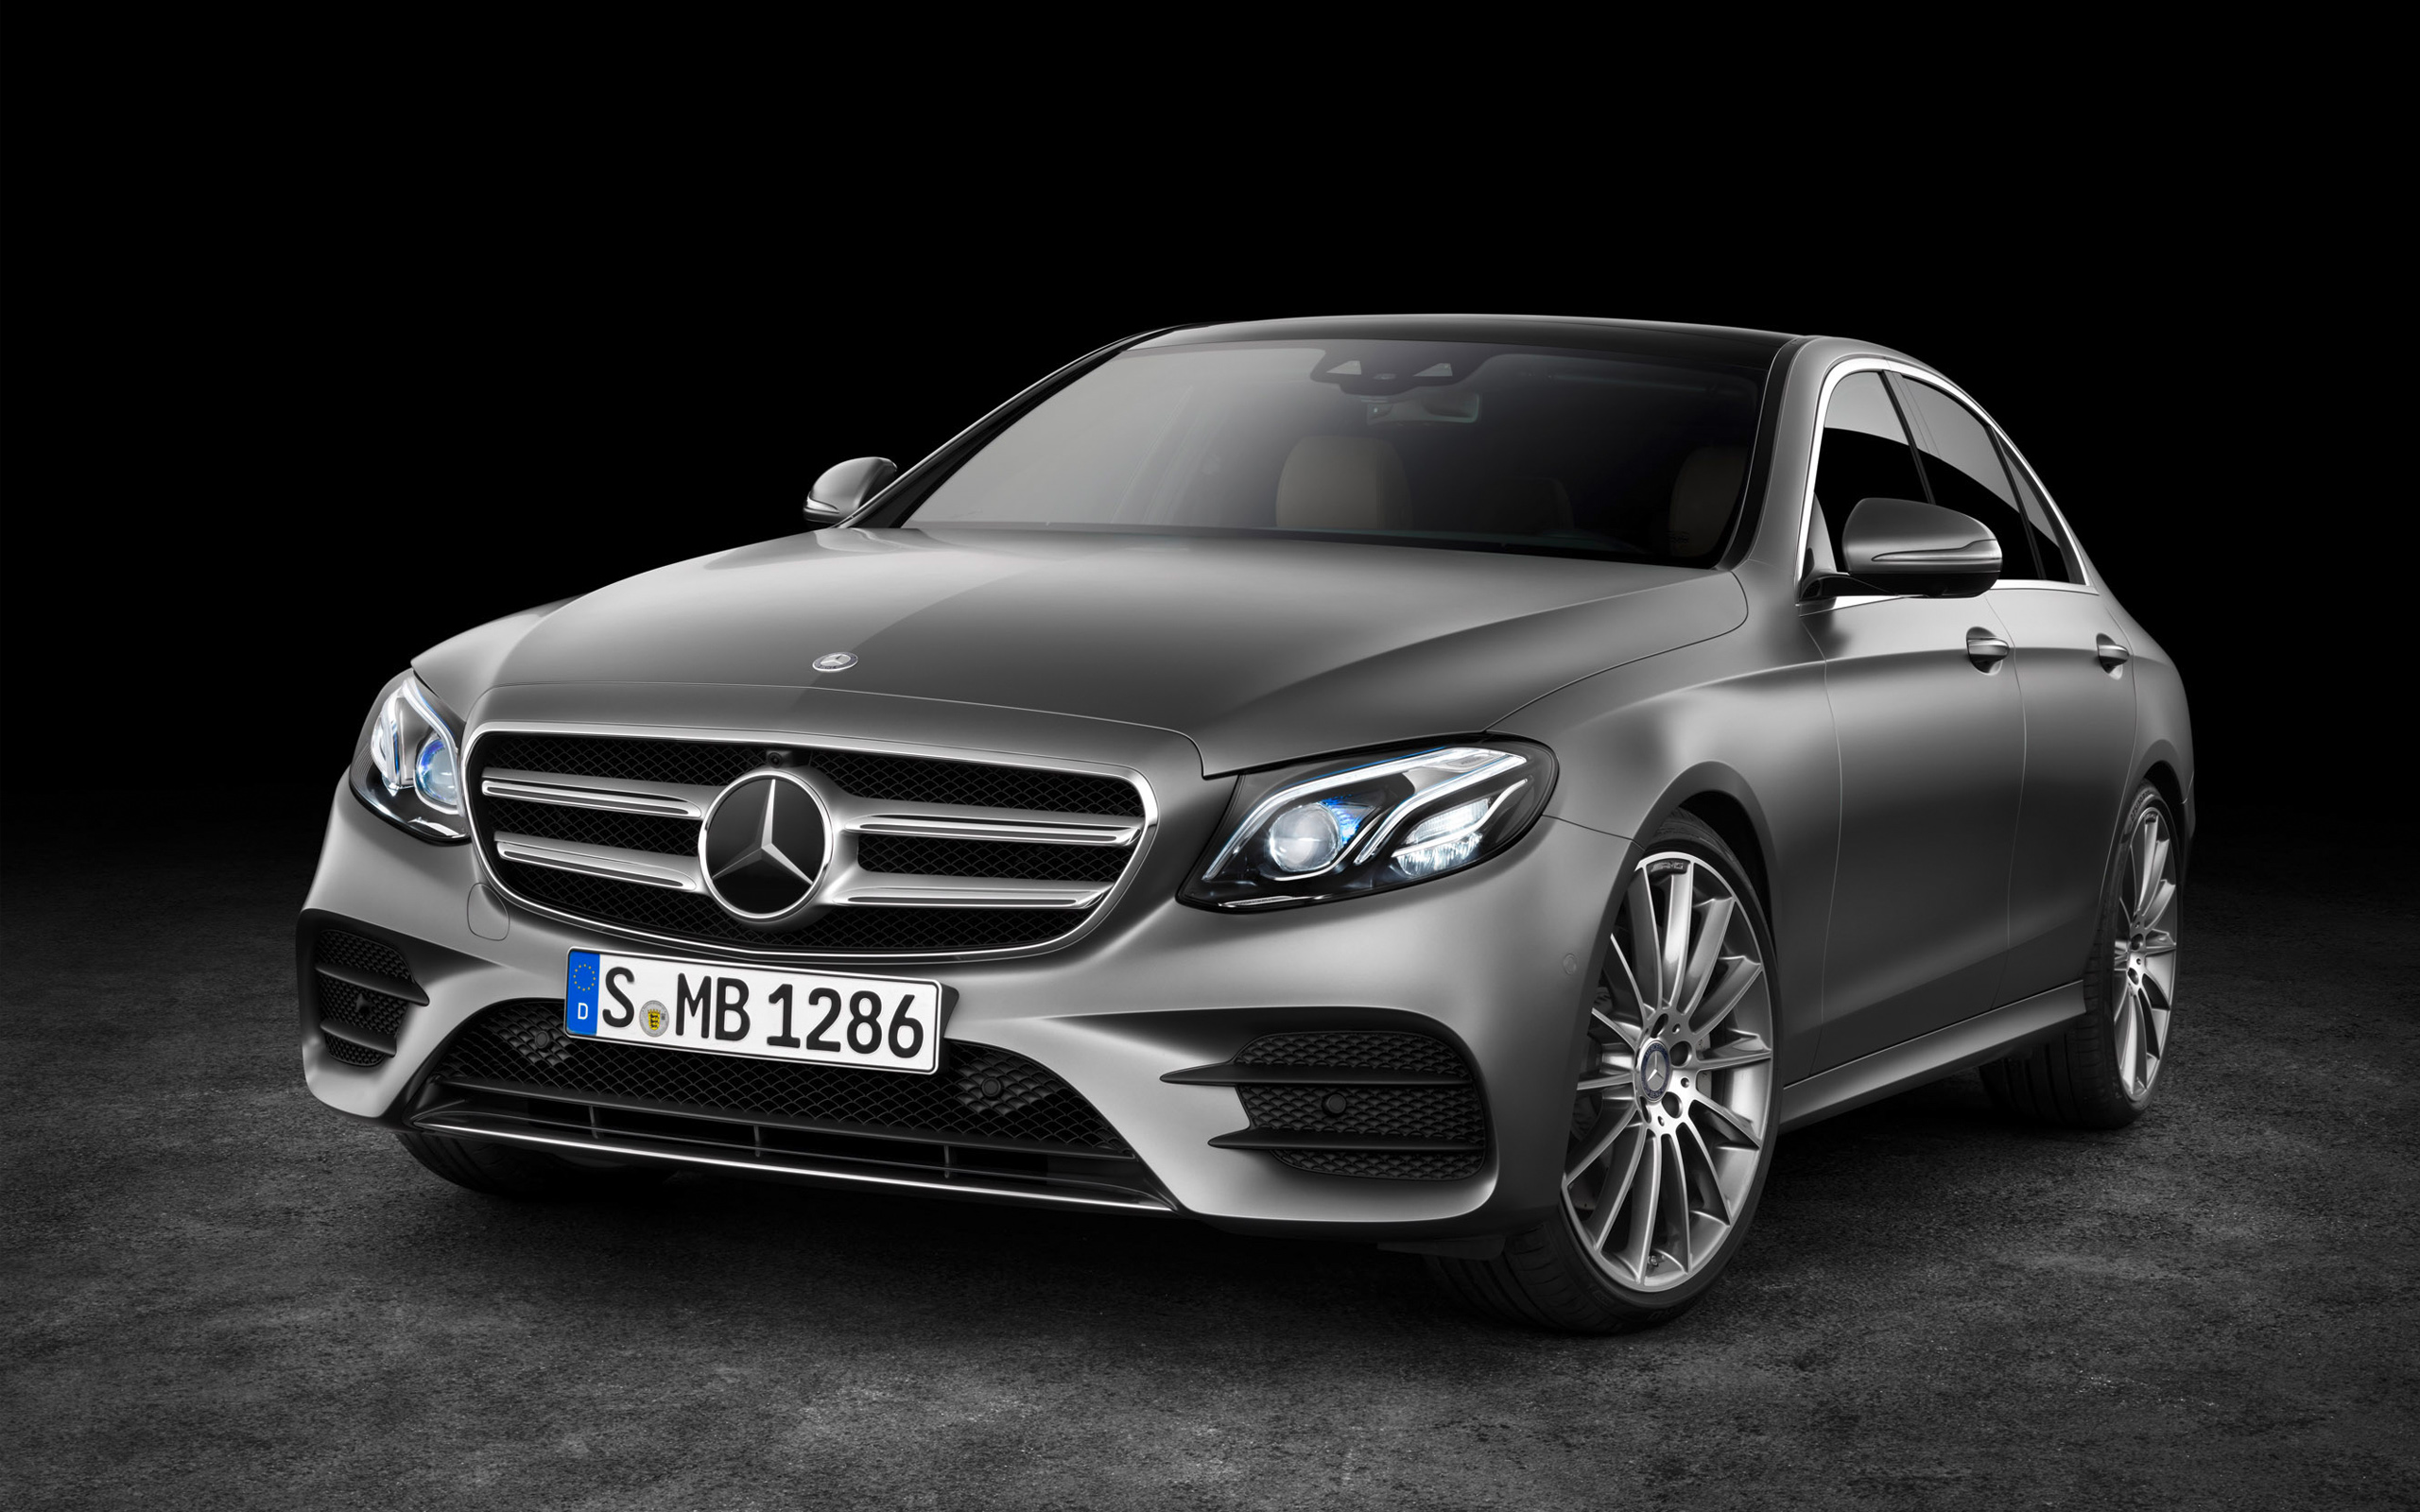 2017 mercedes benz e class wallpaper hd car wallpapers id 6075